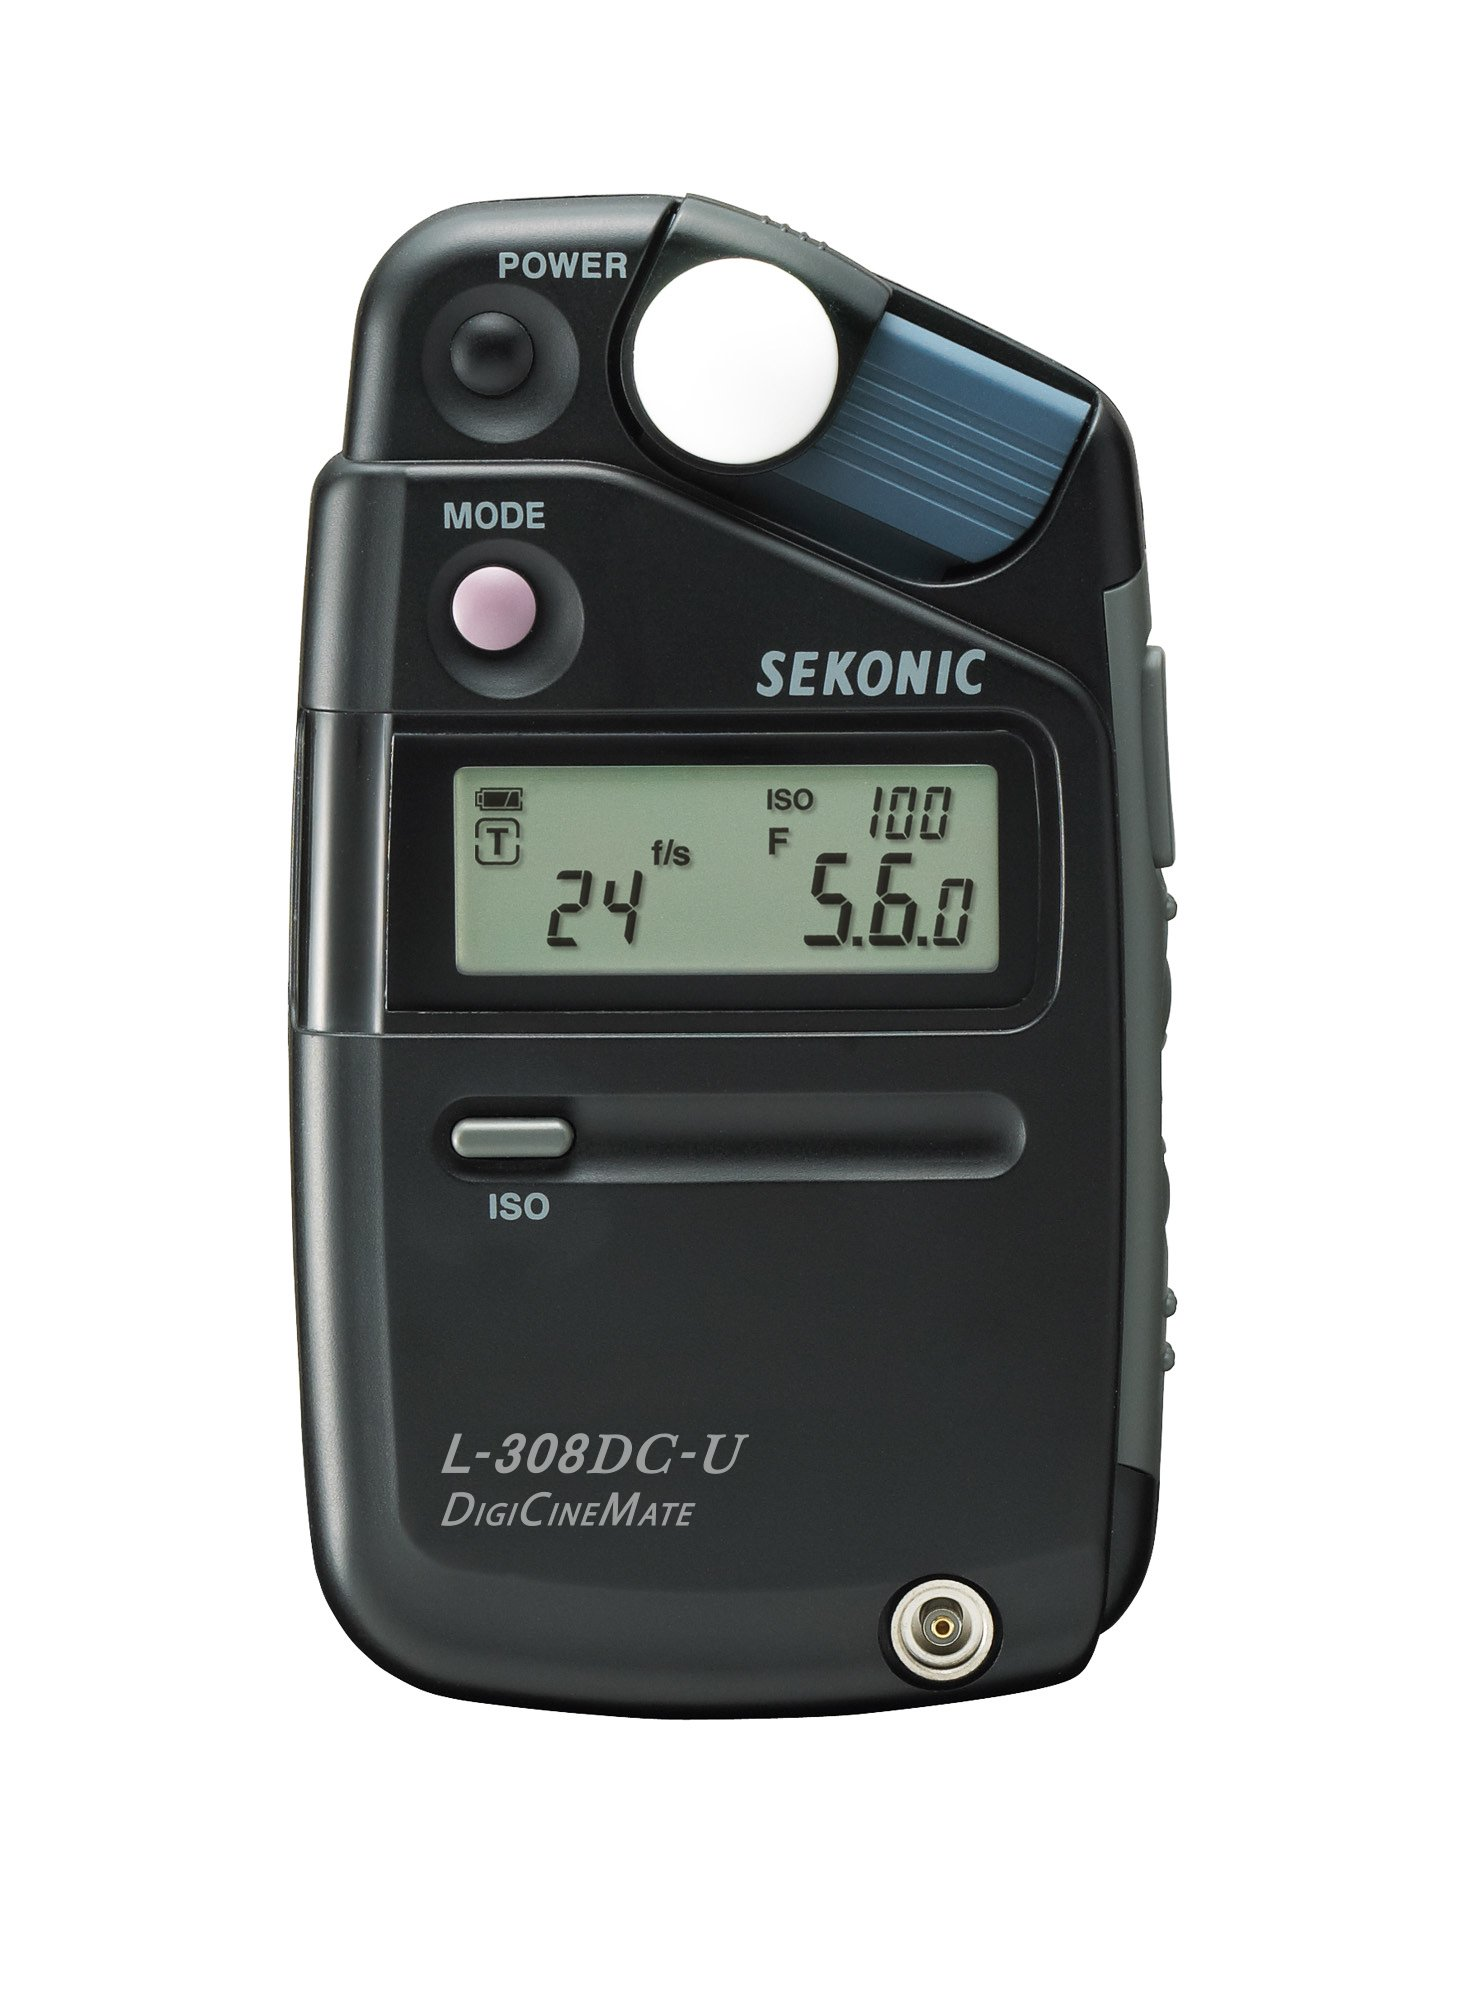 New Sekonic L-308DC-U Digicinemate Lightmeter With Exclusive 3-Year Warranty by Sekonic